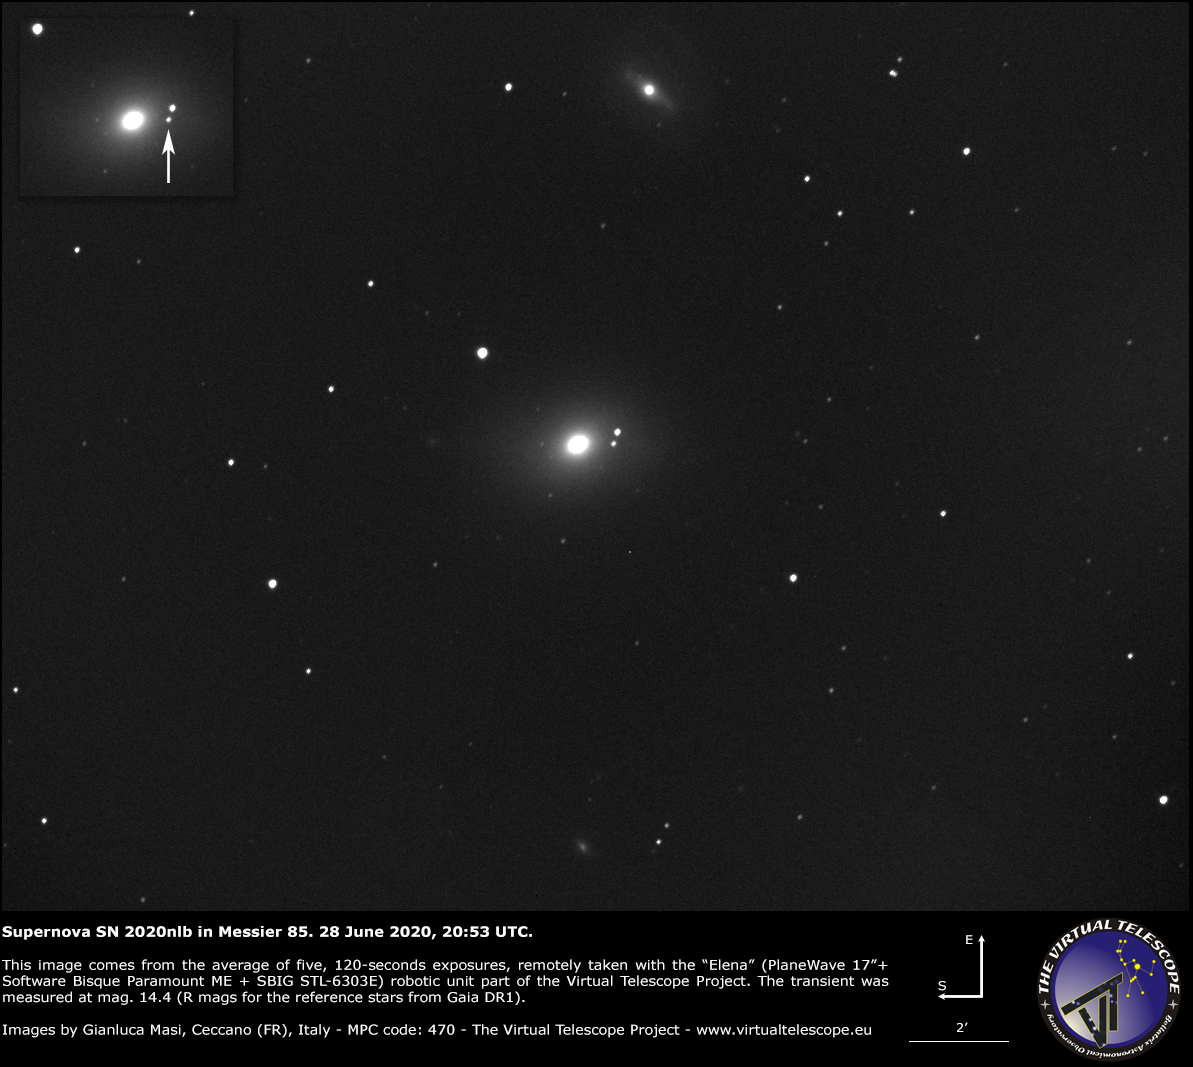 Supernova SN 2020nlb in Messier 85: an image - 28 June 2020